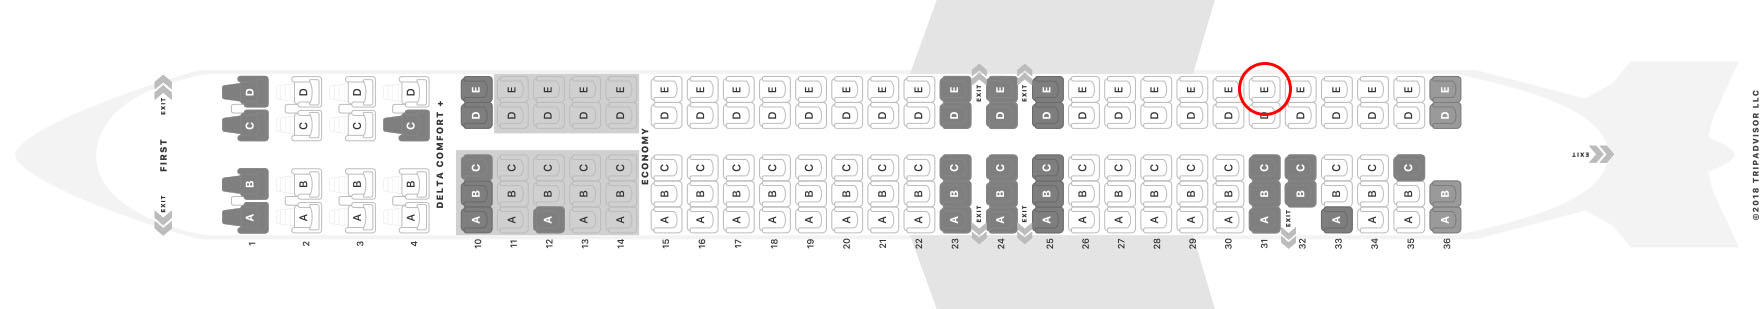 Delta MD-88 seat map